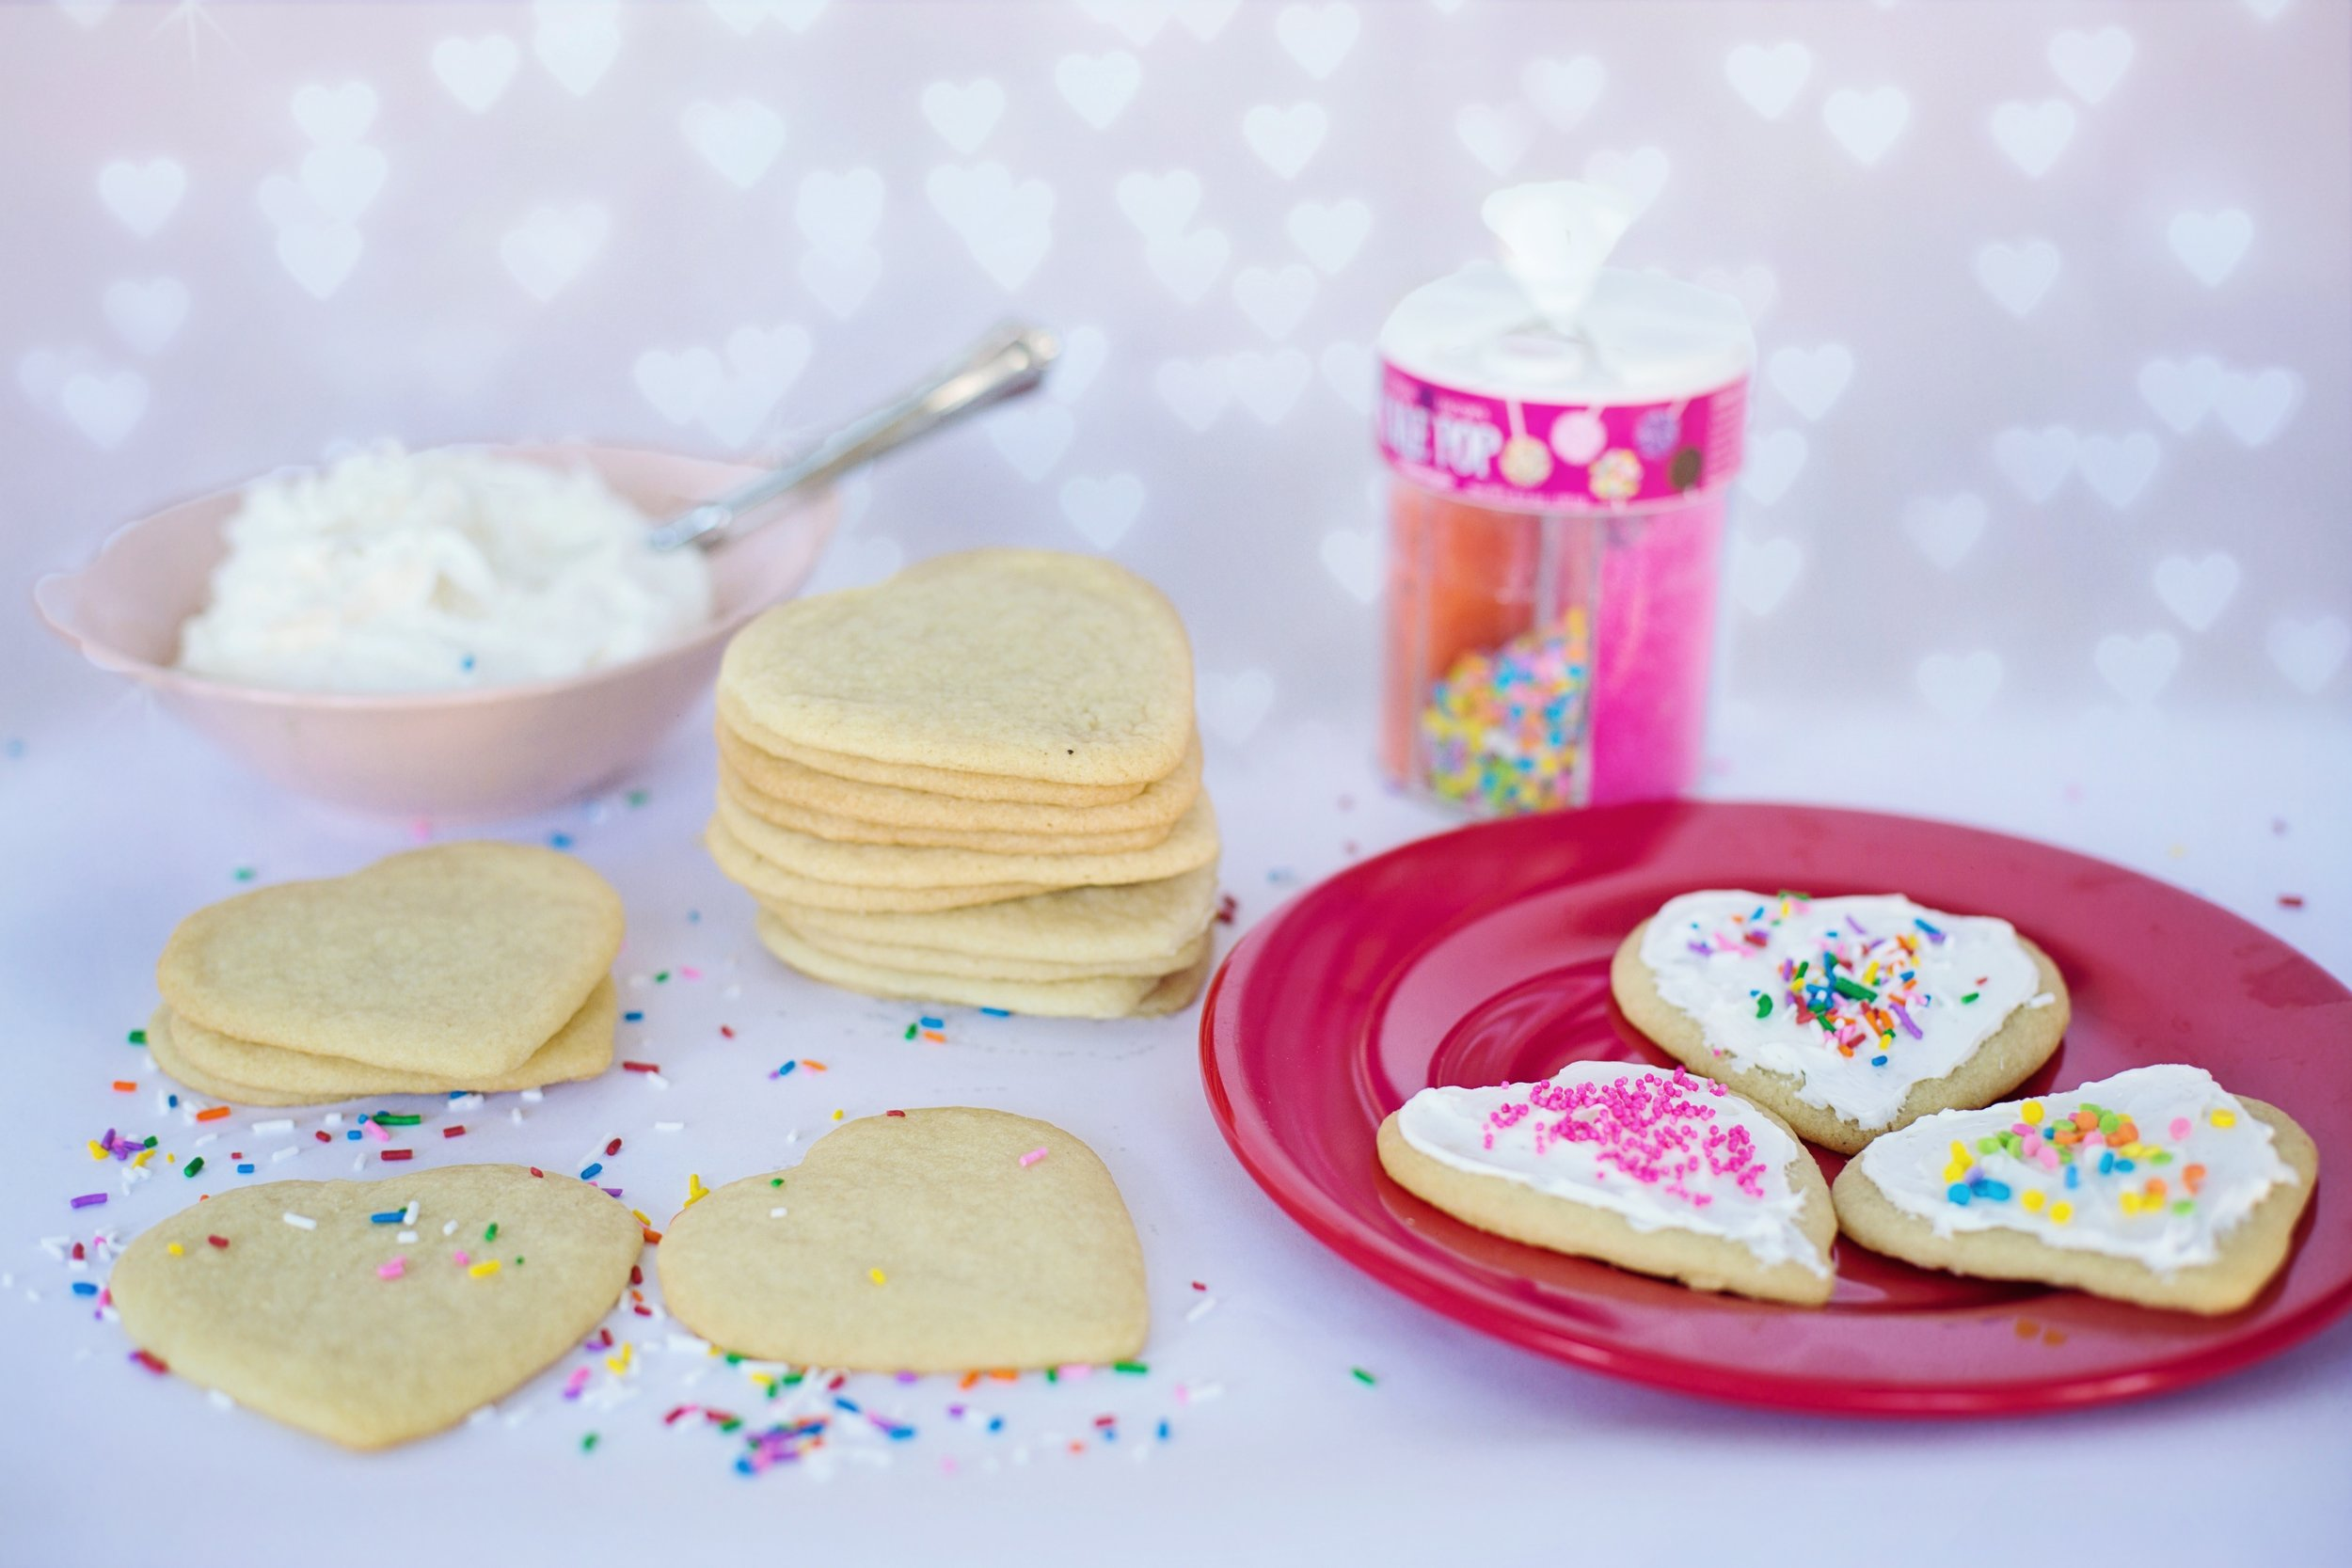 These cookies are simple and sweet. Don't stress out about it. Have fun making these and enjoy them with your family.